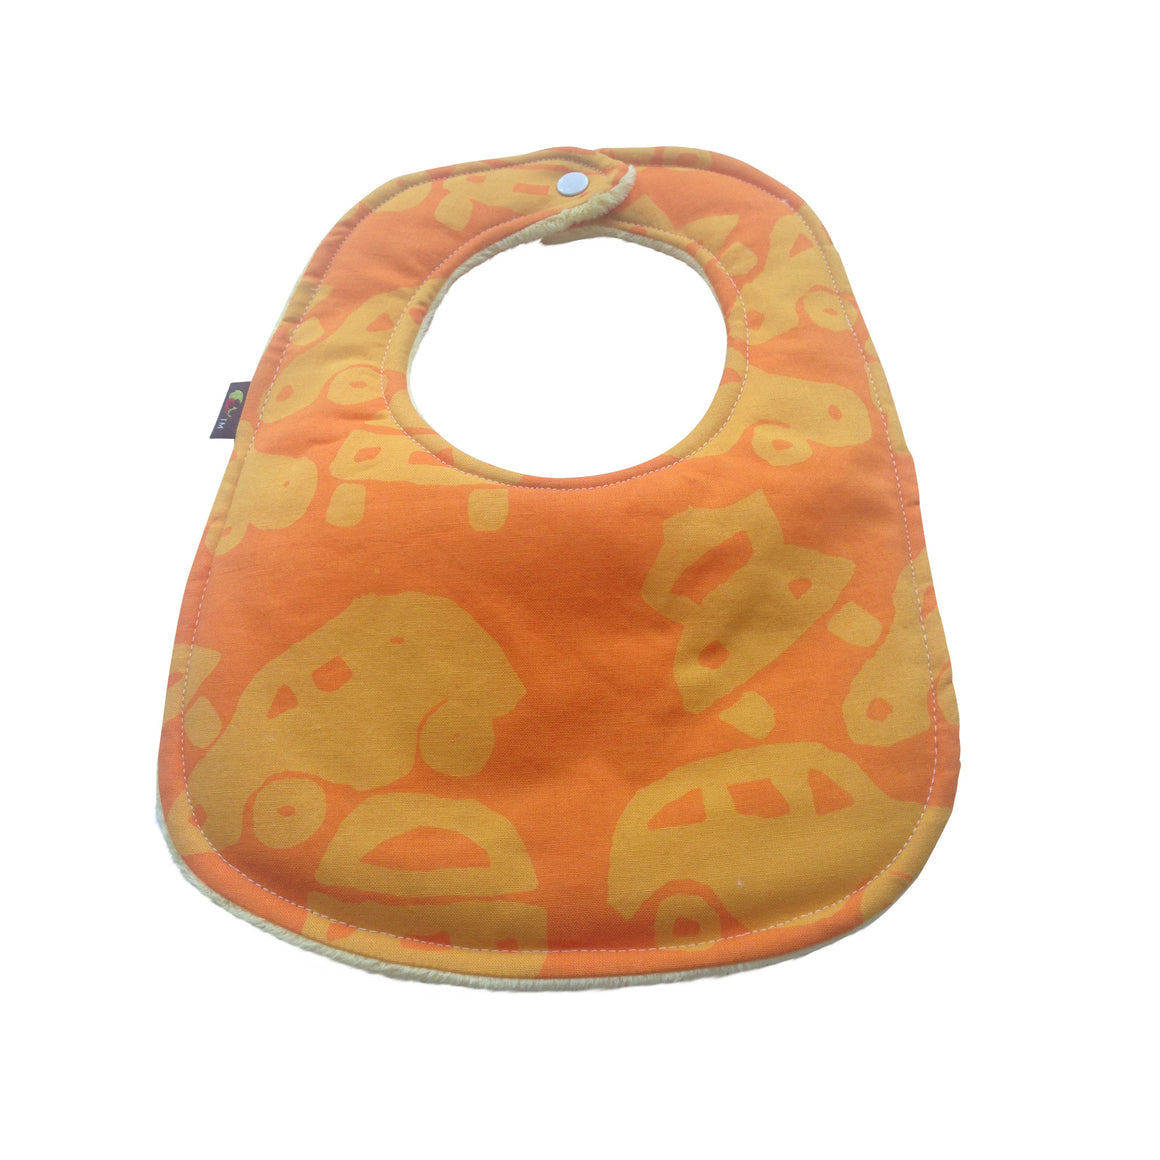 Vroom Vroom and Waterfalls 2-Pack Batik Baby Bib Set (Limited Edition)